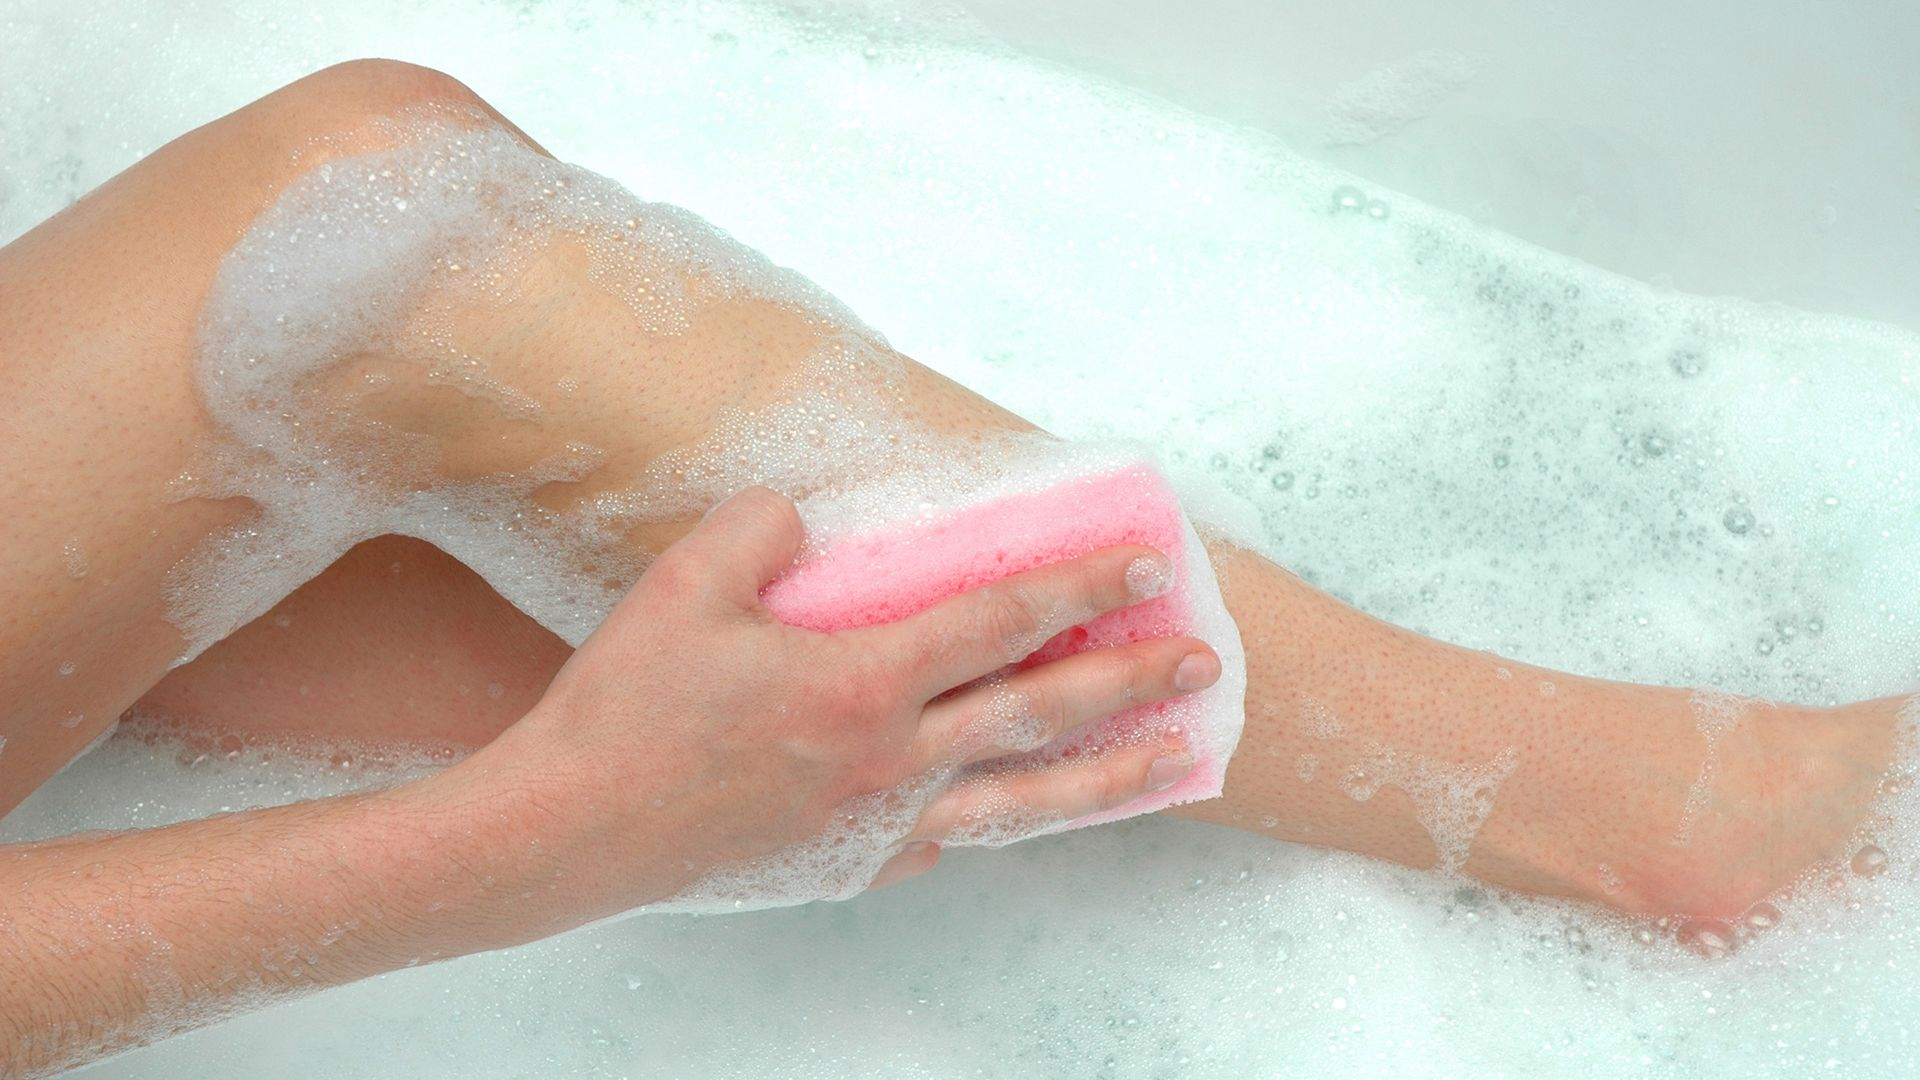 Help Prevent Psoriasis Flare-Ups With This Daily Routine